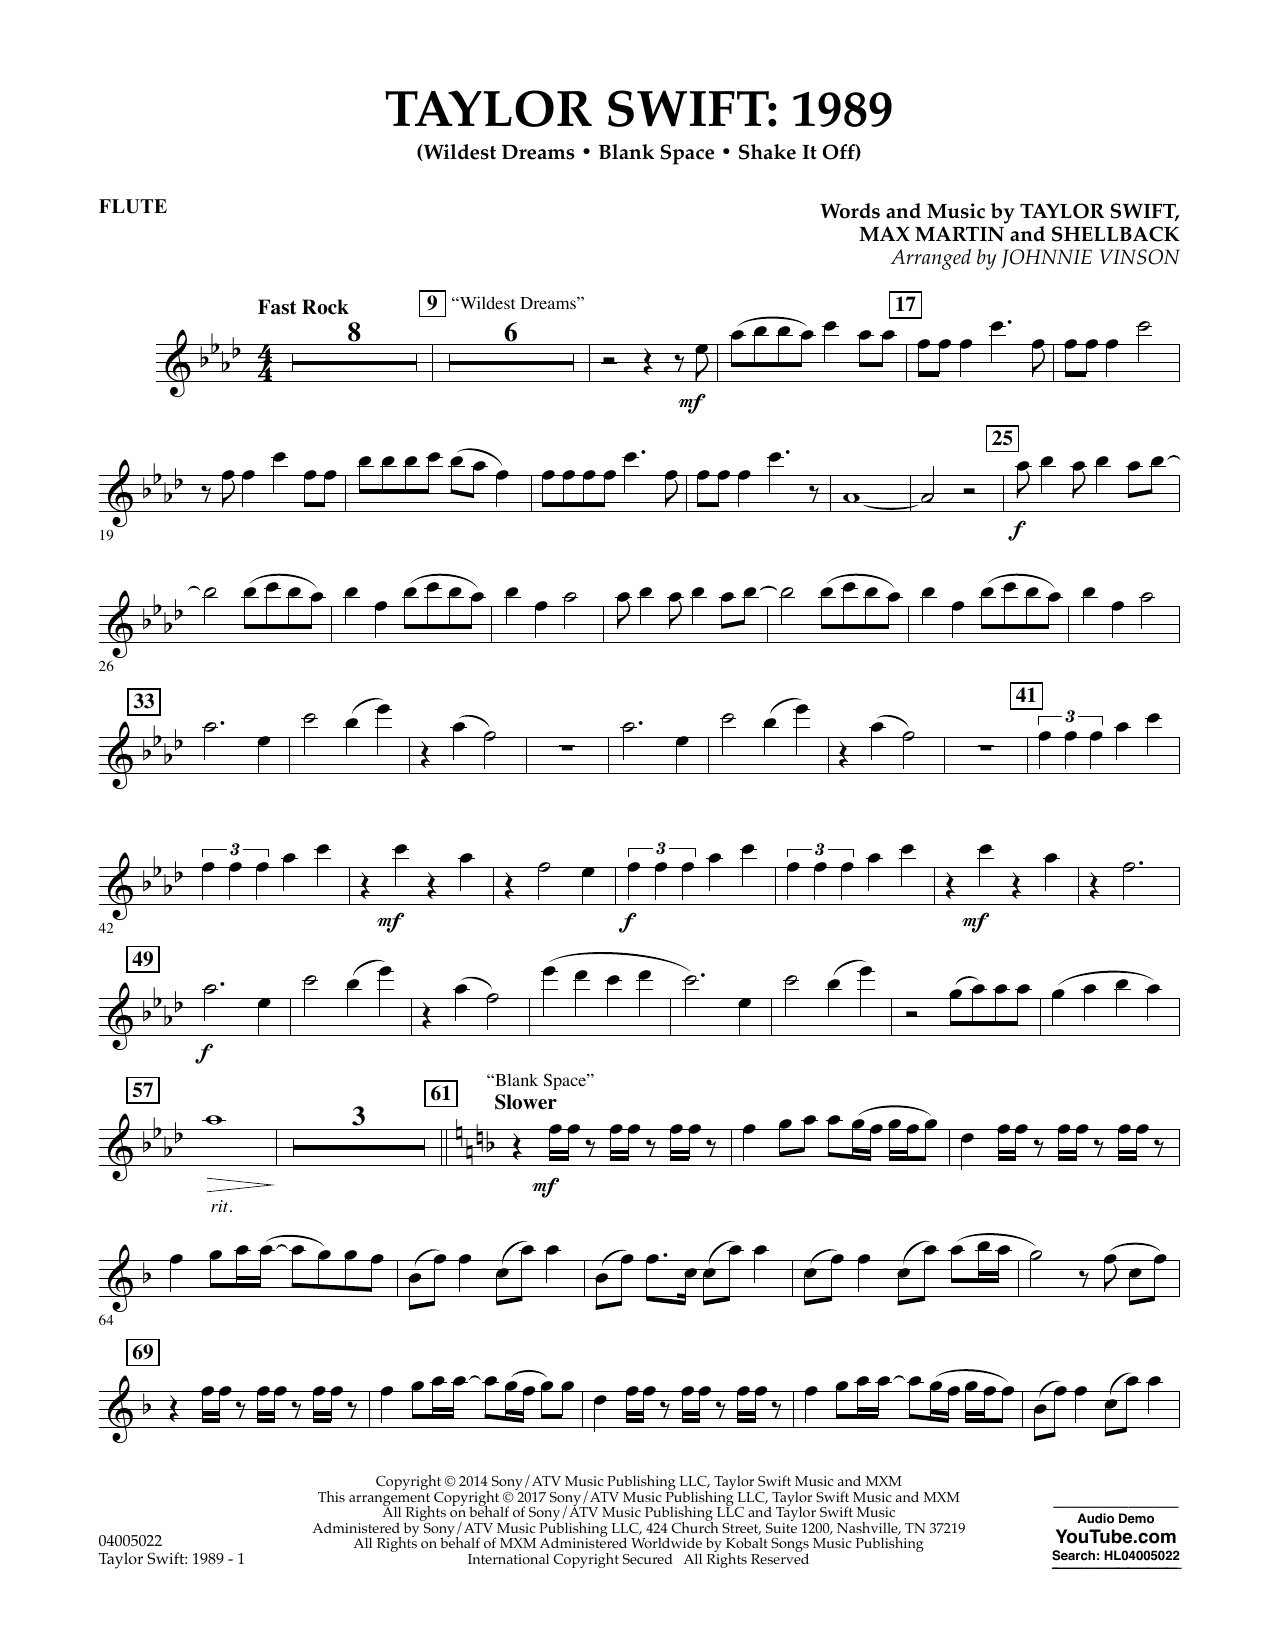 Taylor Swift: 1989 - Flute Sheet Music